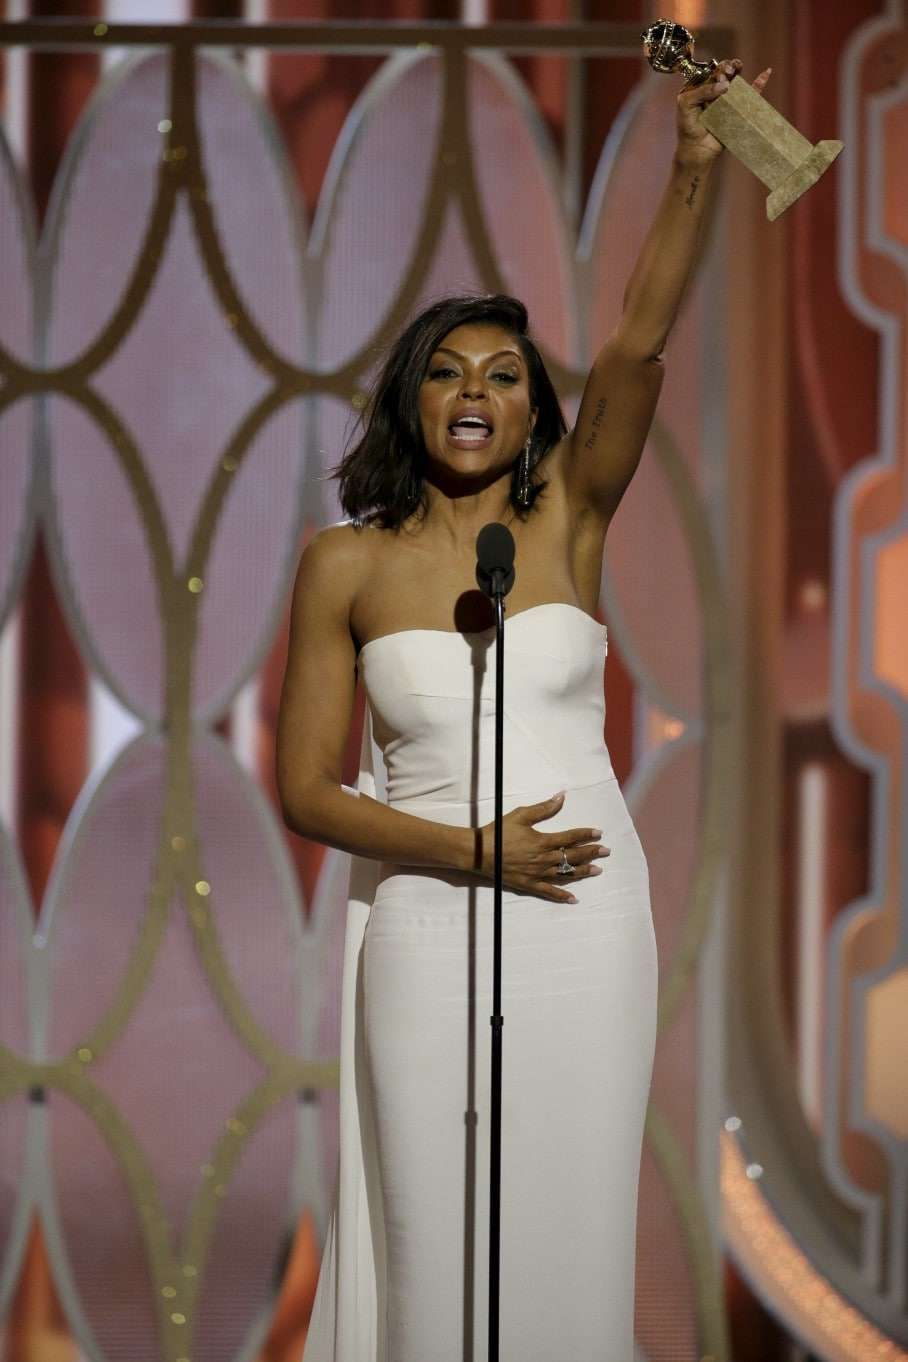 "Taraji P. Henson reacts after winning Best Actress - TV Series, Drama for her performance in ""Empire"" at the 73rd Golden Globe Awards in Beverly Hills, California January 10, 2016. REUTERS/Paul Drinkwater/NBC Universal/Handout For editorial use only. Additional clearance required for commercial or promotional use. Contact your local office for assistance. Any commercial or promotional use of NBCUniversal content requires NBCUniversal's prior written consent. No book publishing without prior approval. TPX IMAGES OF THE DAY"